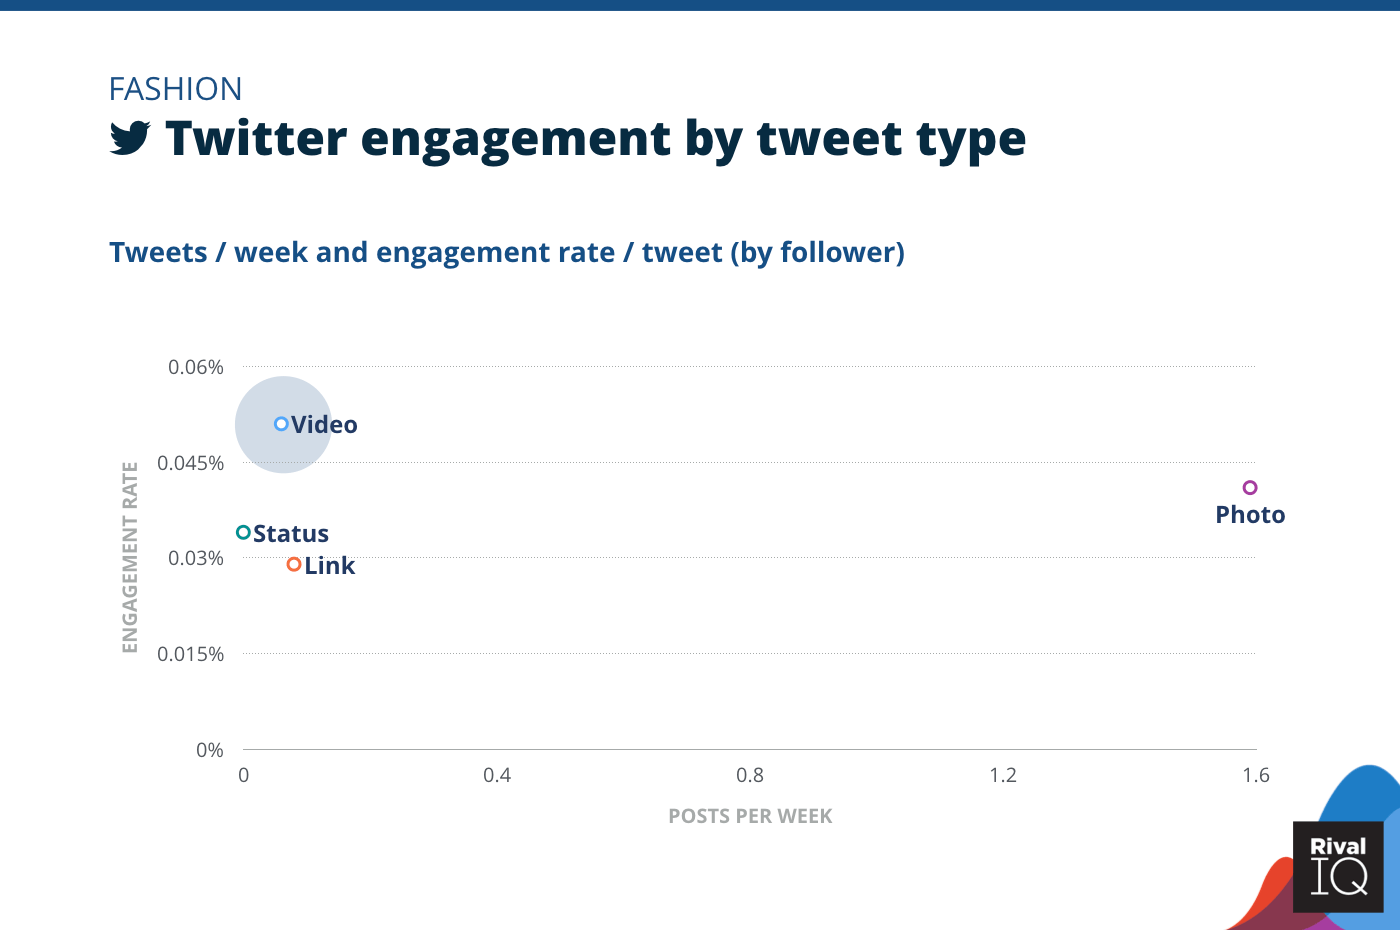 Chart of Twitter posts per week and engagement rate by tweet type, Fashion